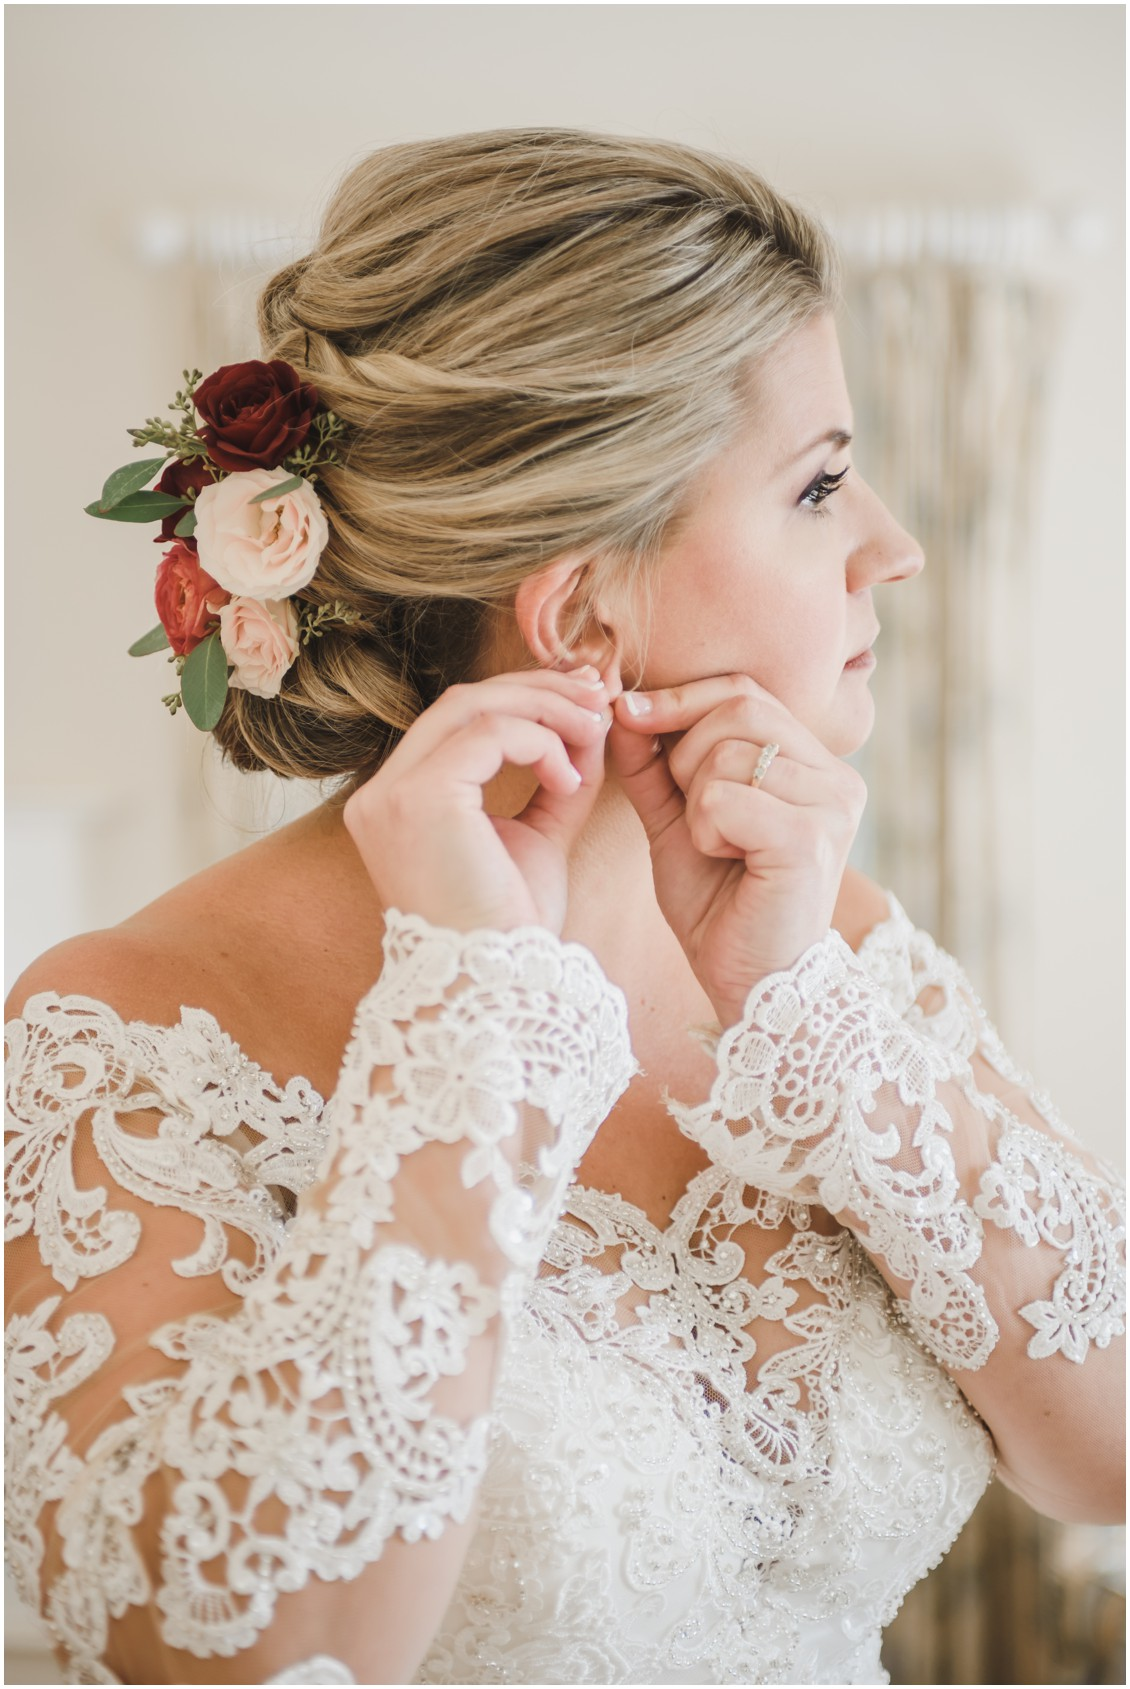 Bride getting ready for wedding | My Eastern Shore Wedding | The Oaks | Monteray Farms